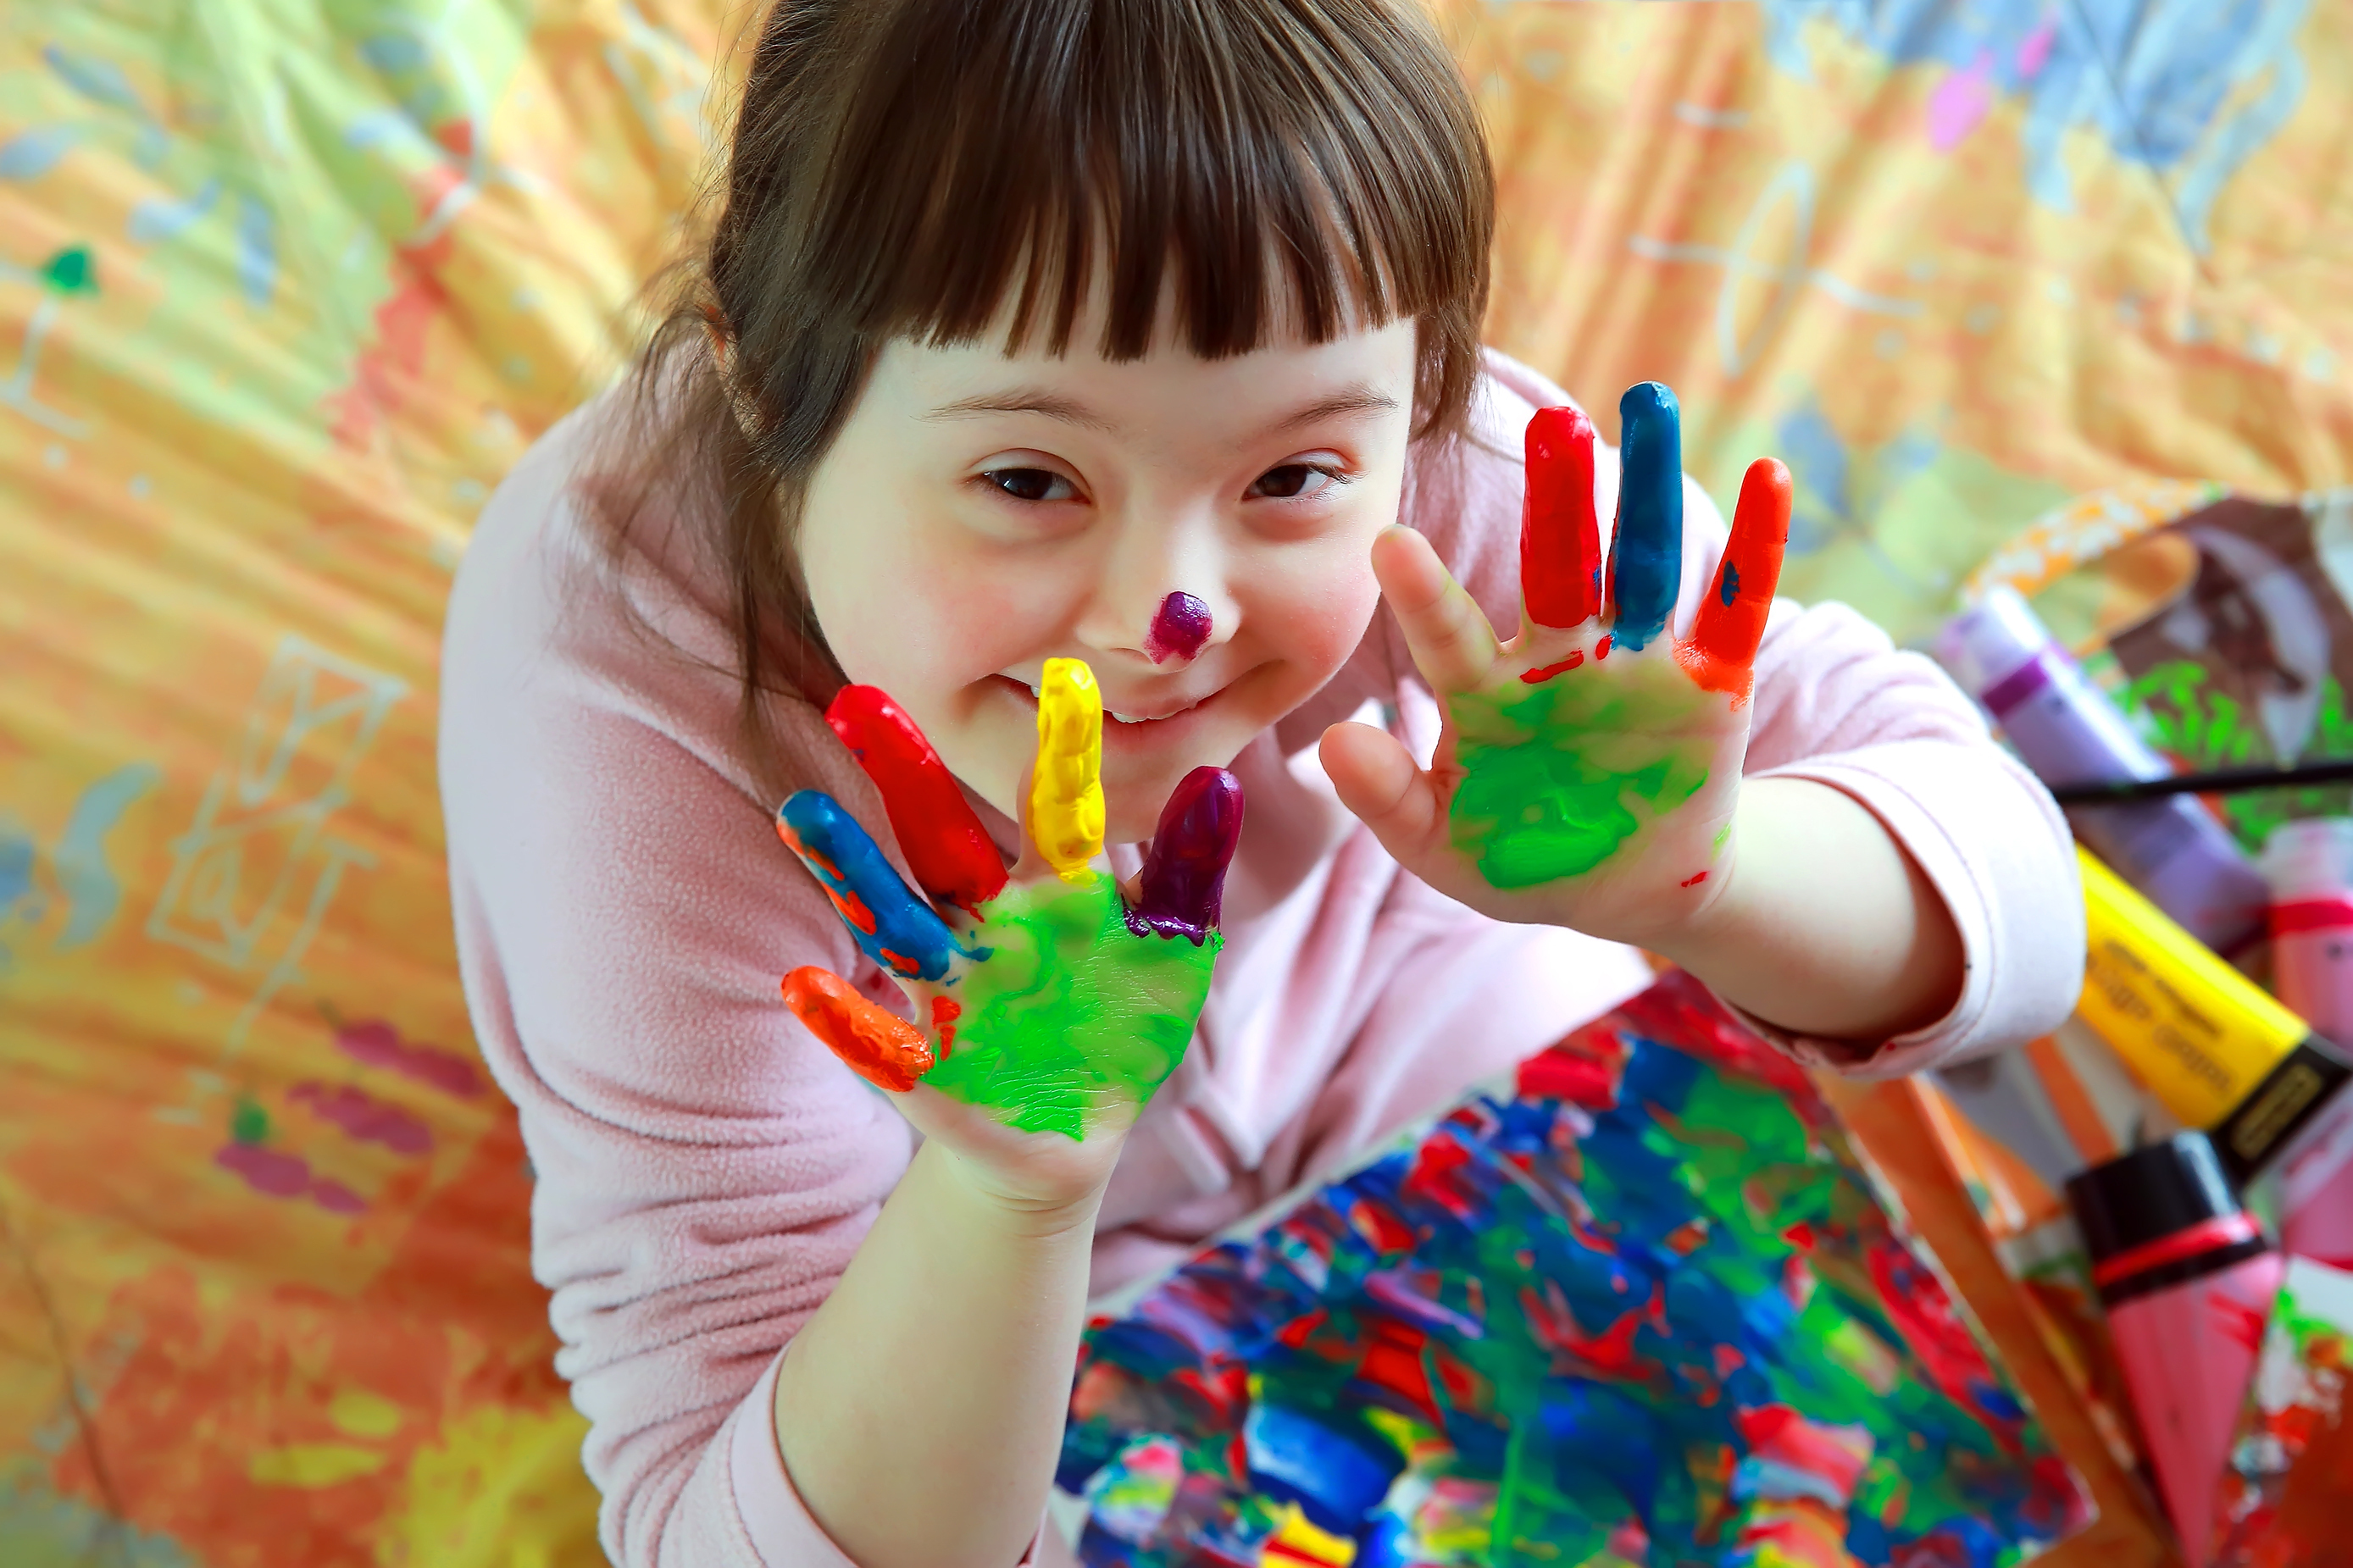 Young girl with fingerpaints